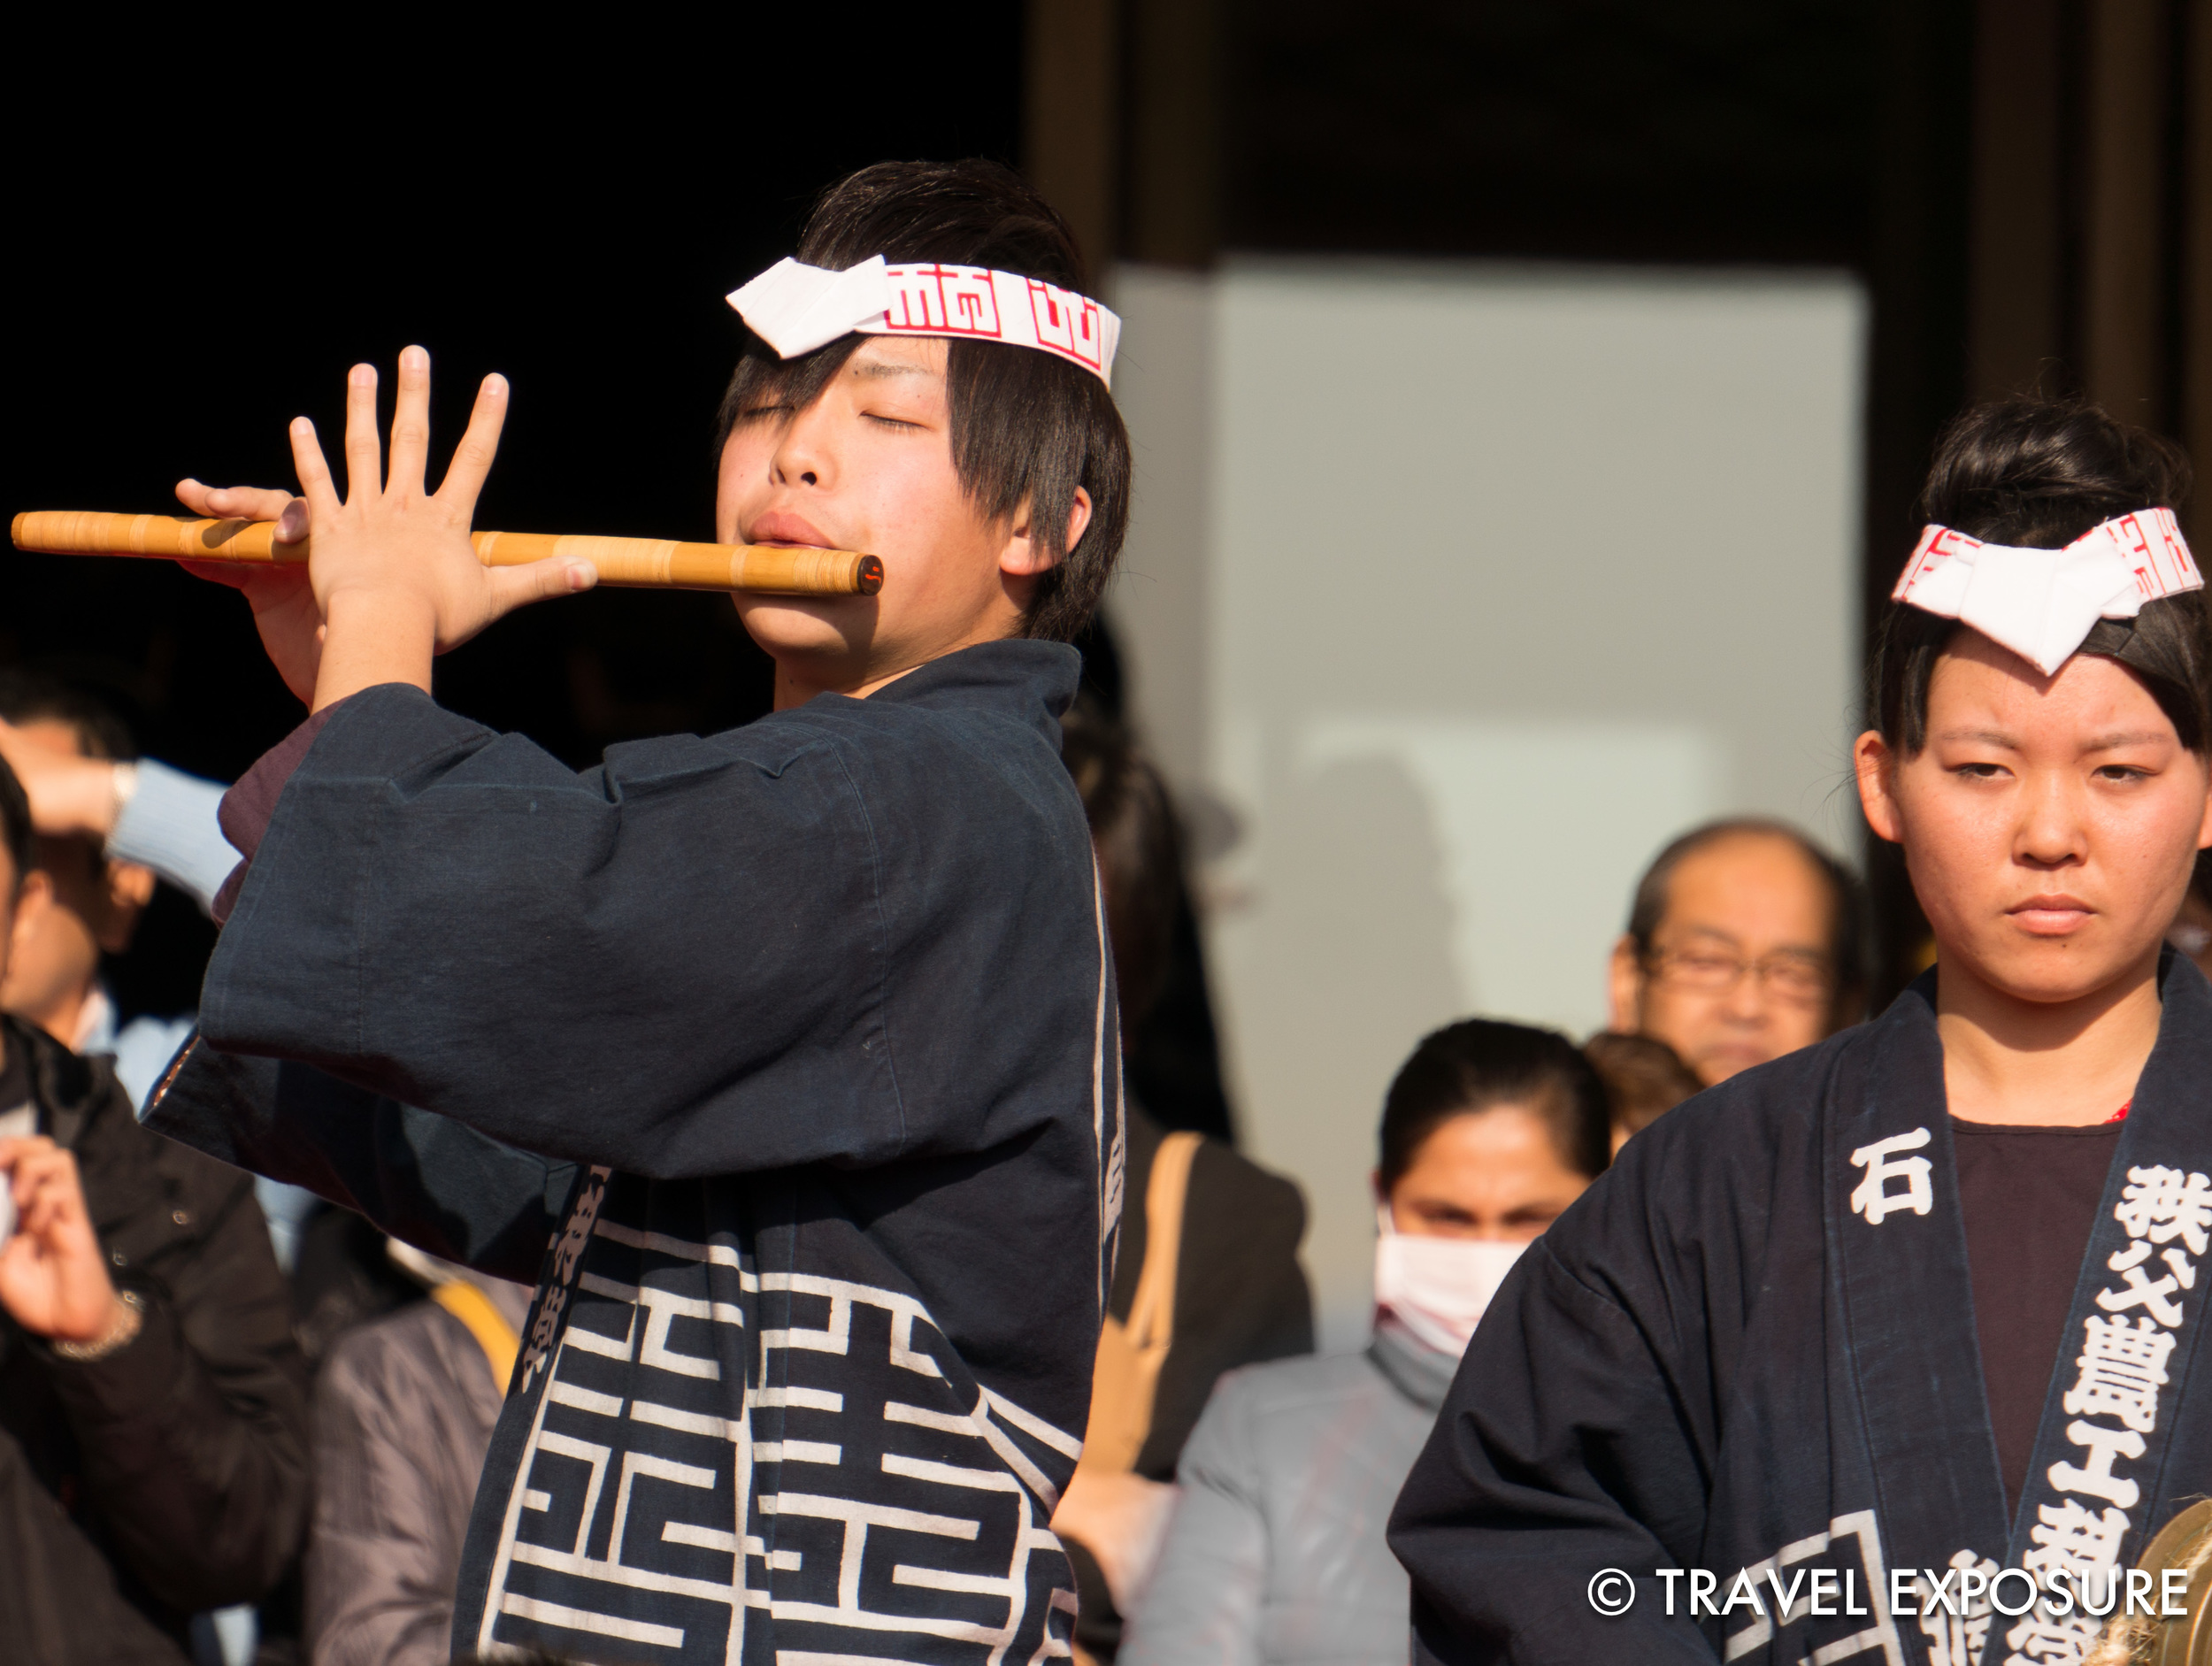 WEEK OF JANUARY 6 A flute player performs with a Taiko Japanese drum ensemble as part of the New Year's celebrations at the Tokyo National Museum.